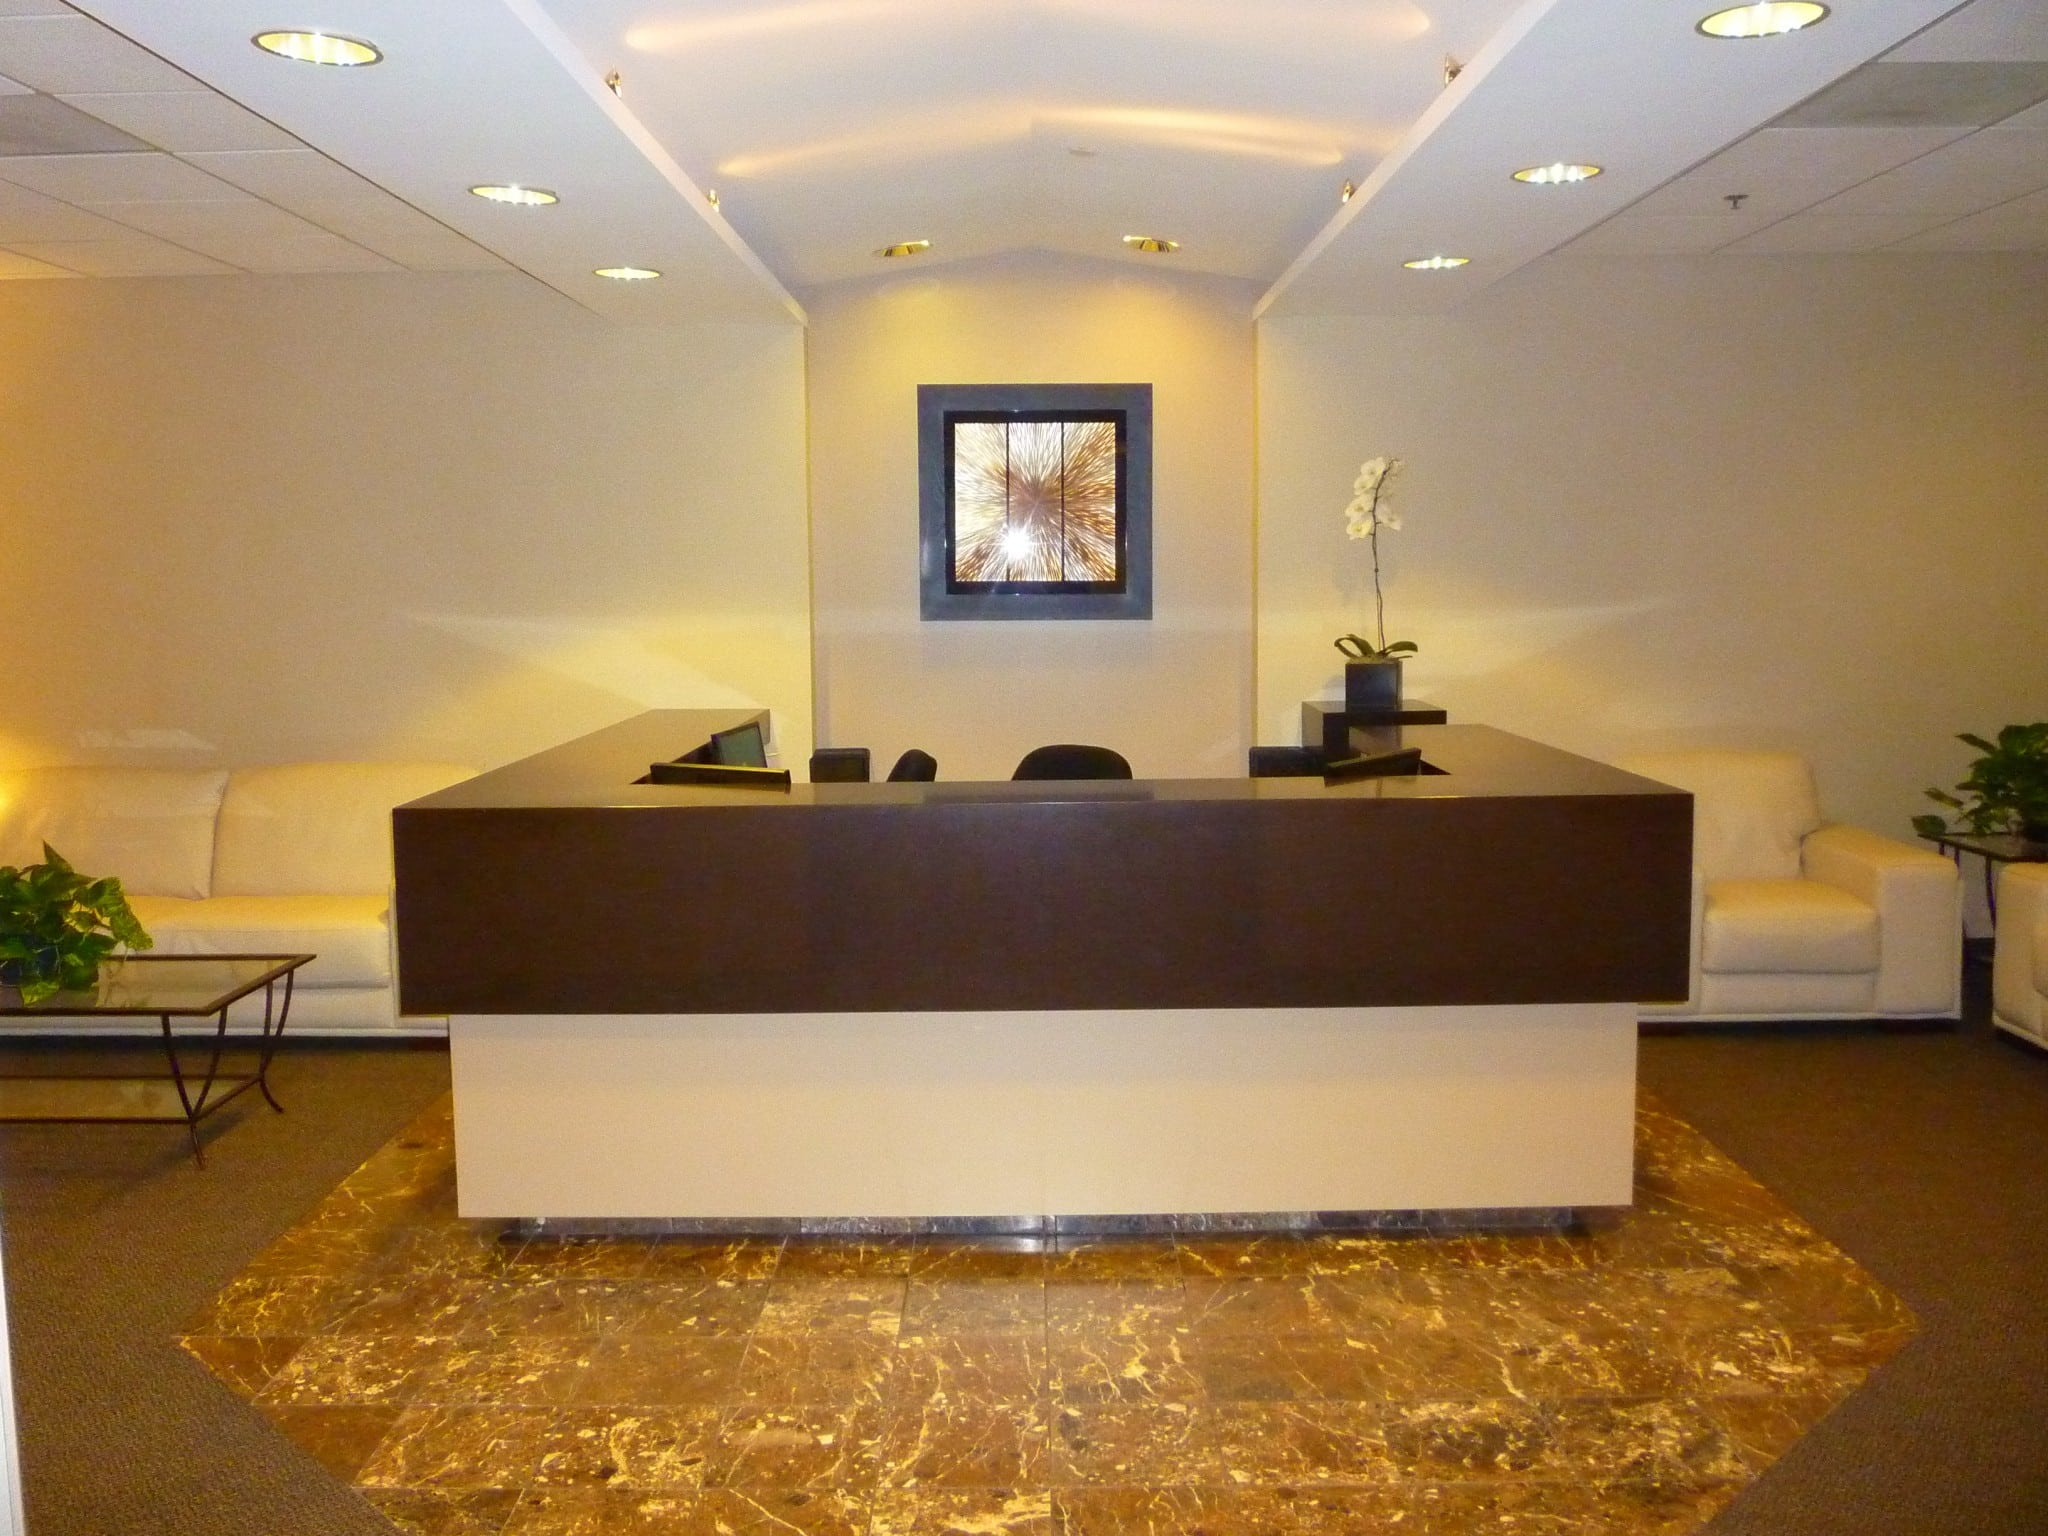 San diego office space barrister suites for Bureau reception